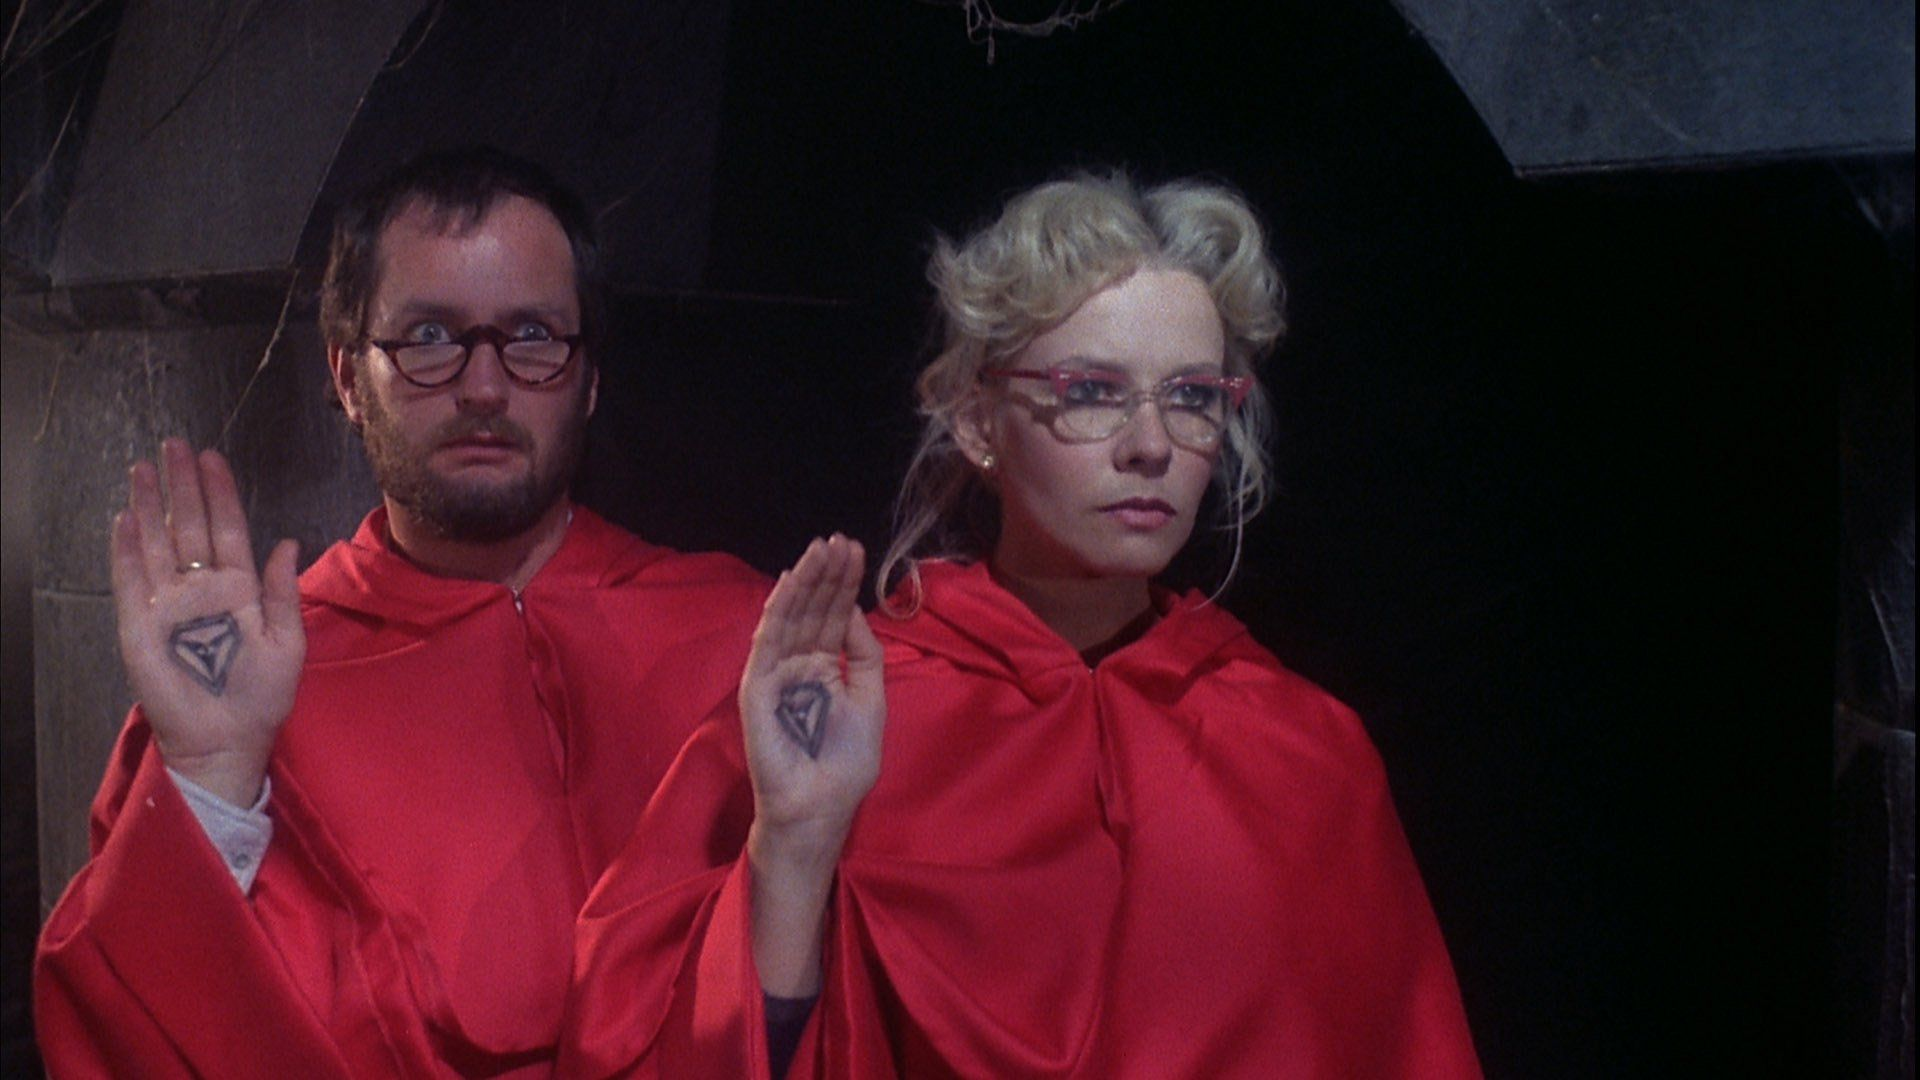 Kenny Everett and Pamela Stephenson in Bloodbath at the House of Death (1984)